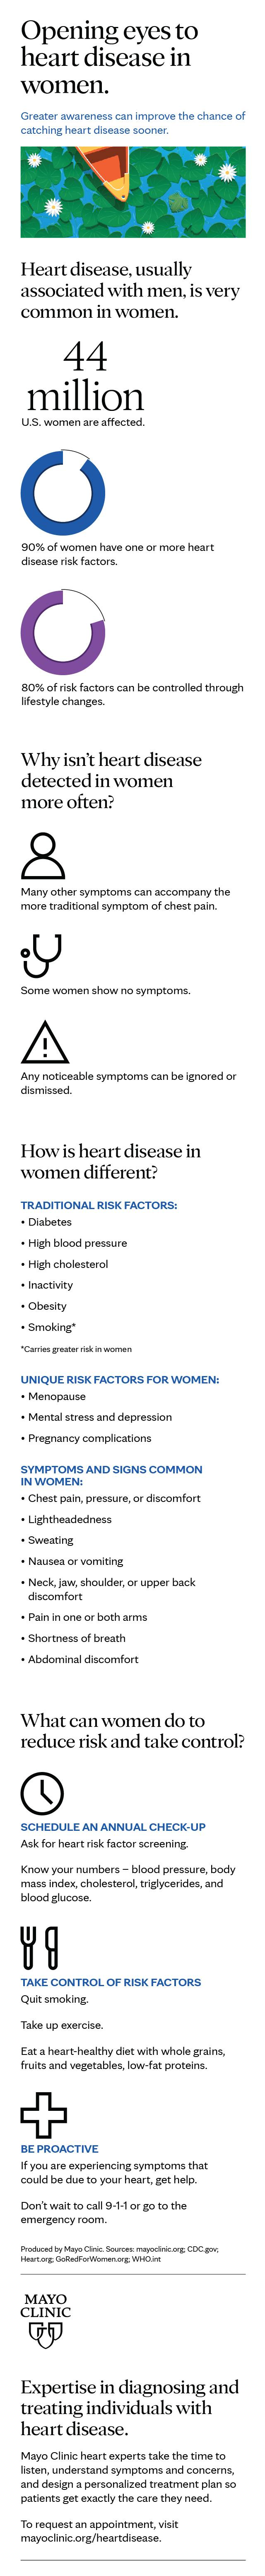 Infographic: Women and heart disease